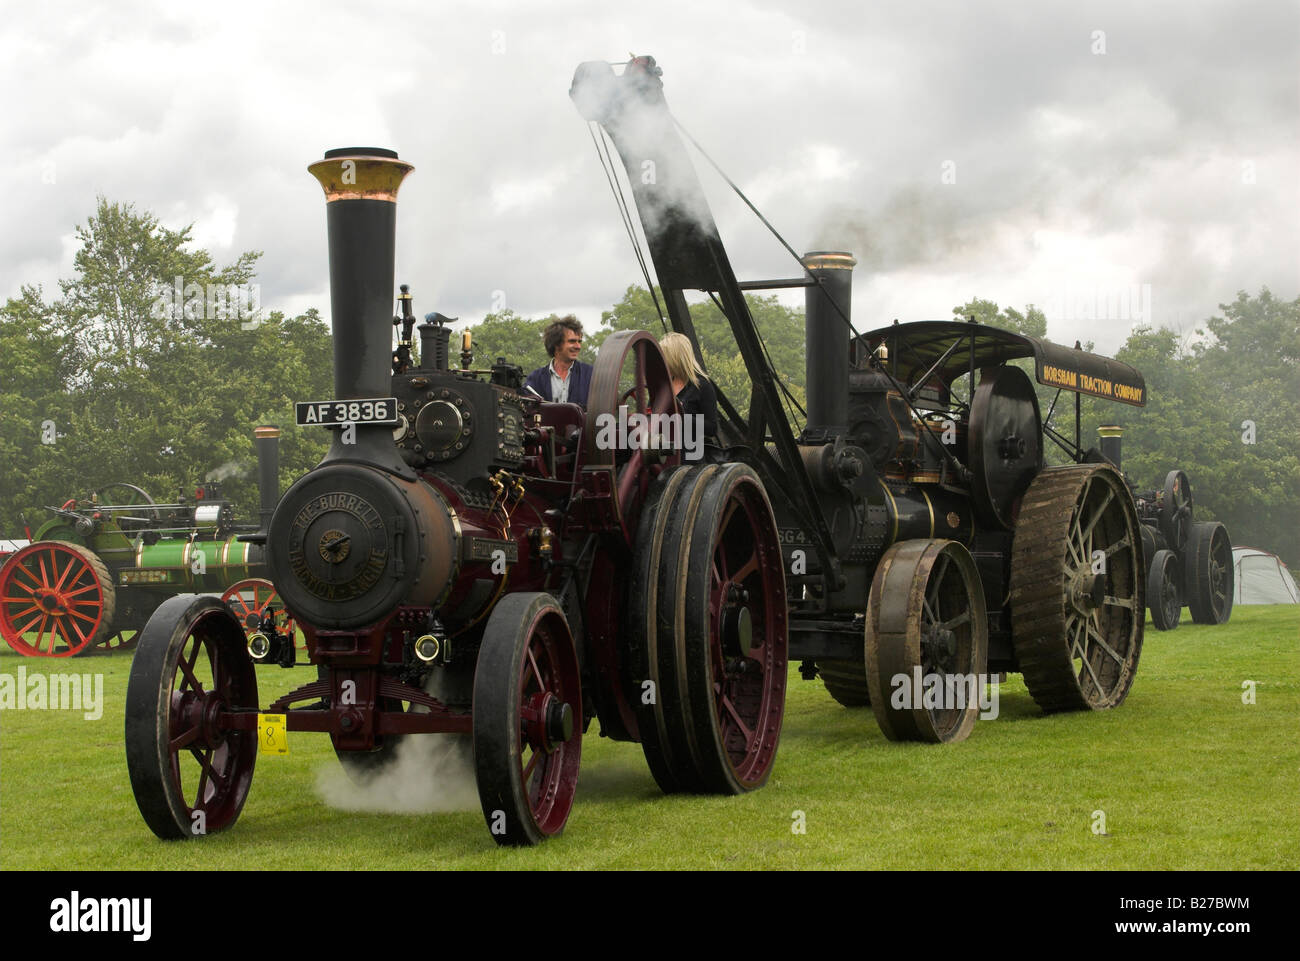 A Burrell 6nhp General Purpose Traction Engine built in 1916 tows a Fowler B5 8nhp Crane Engine built in 1901. - Stock Image